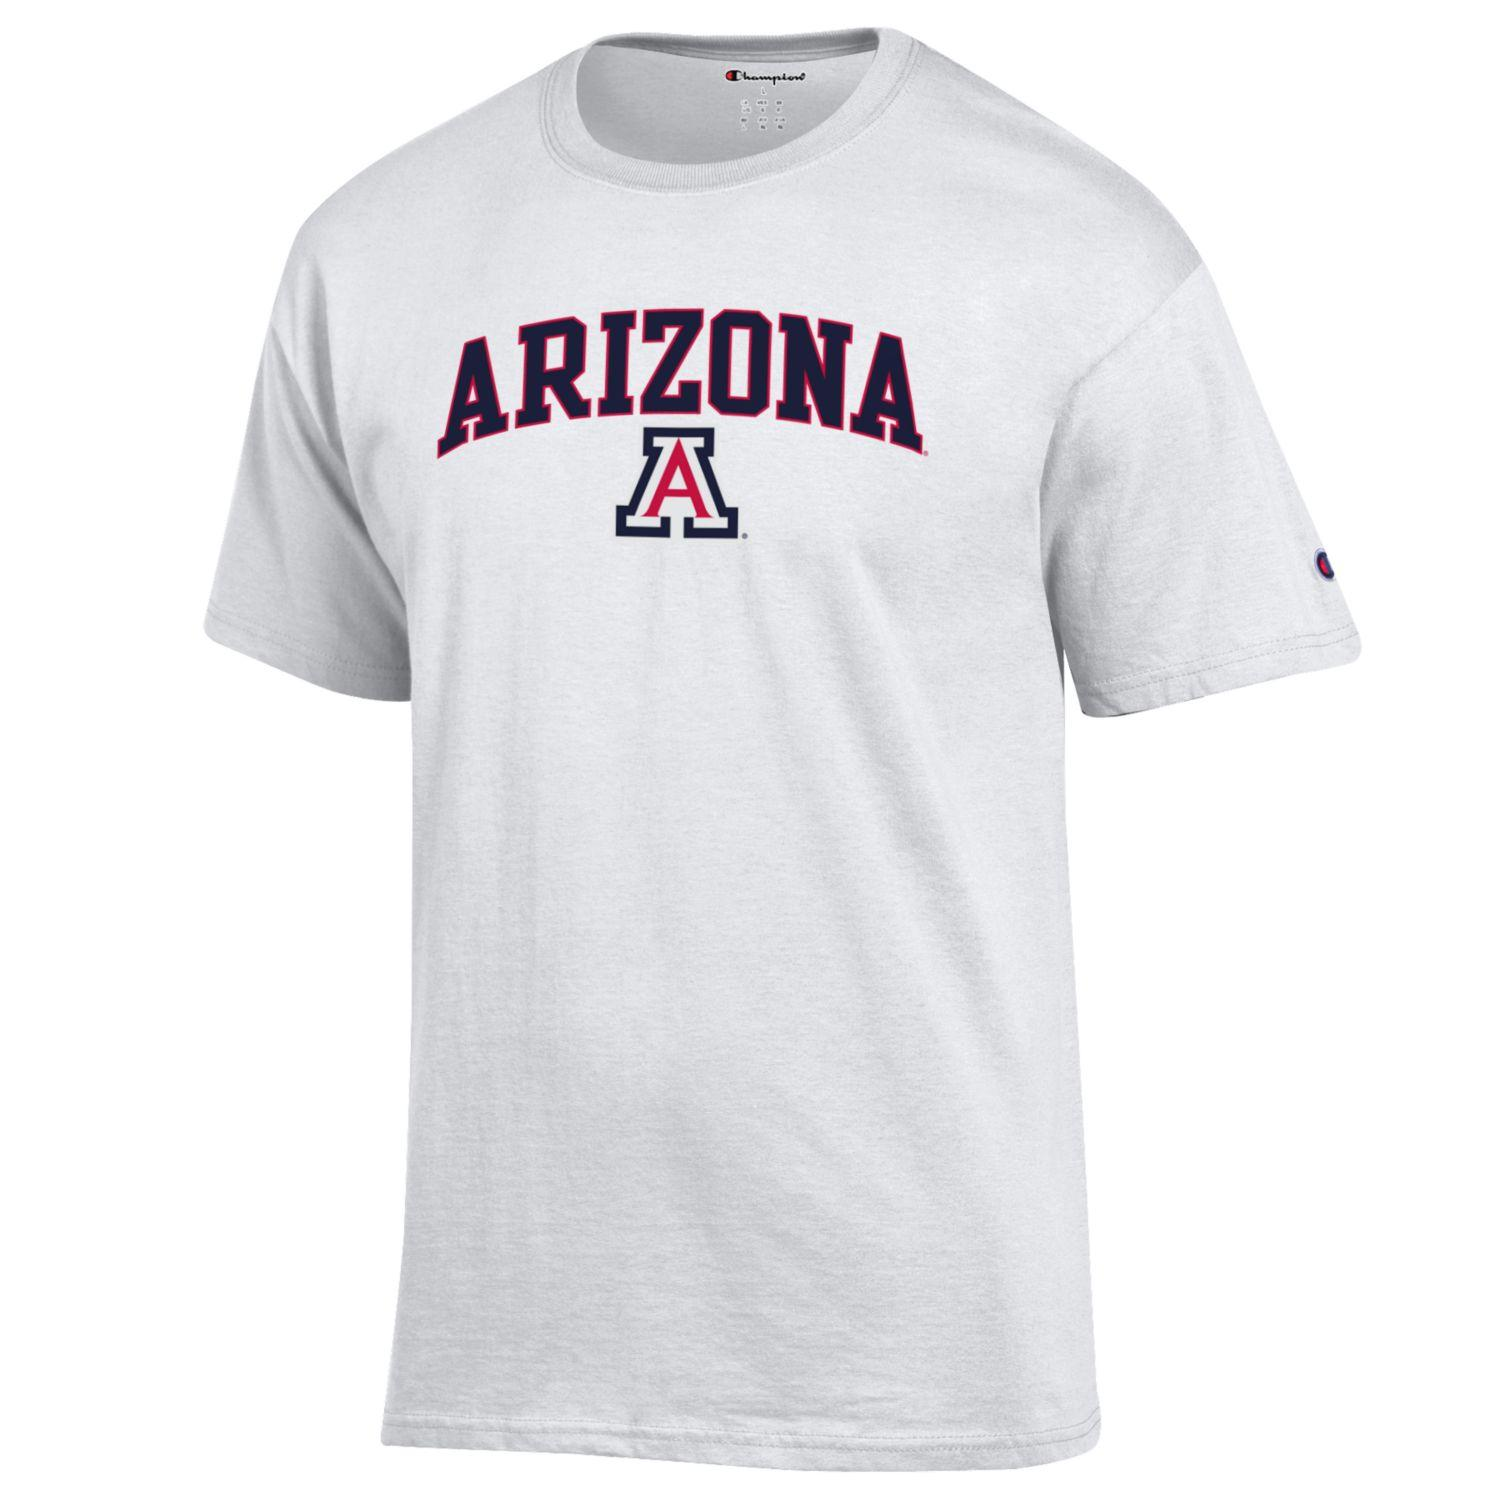 36dacc7ca6fd Champion: Arizona Arch Logo Core Tee - White